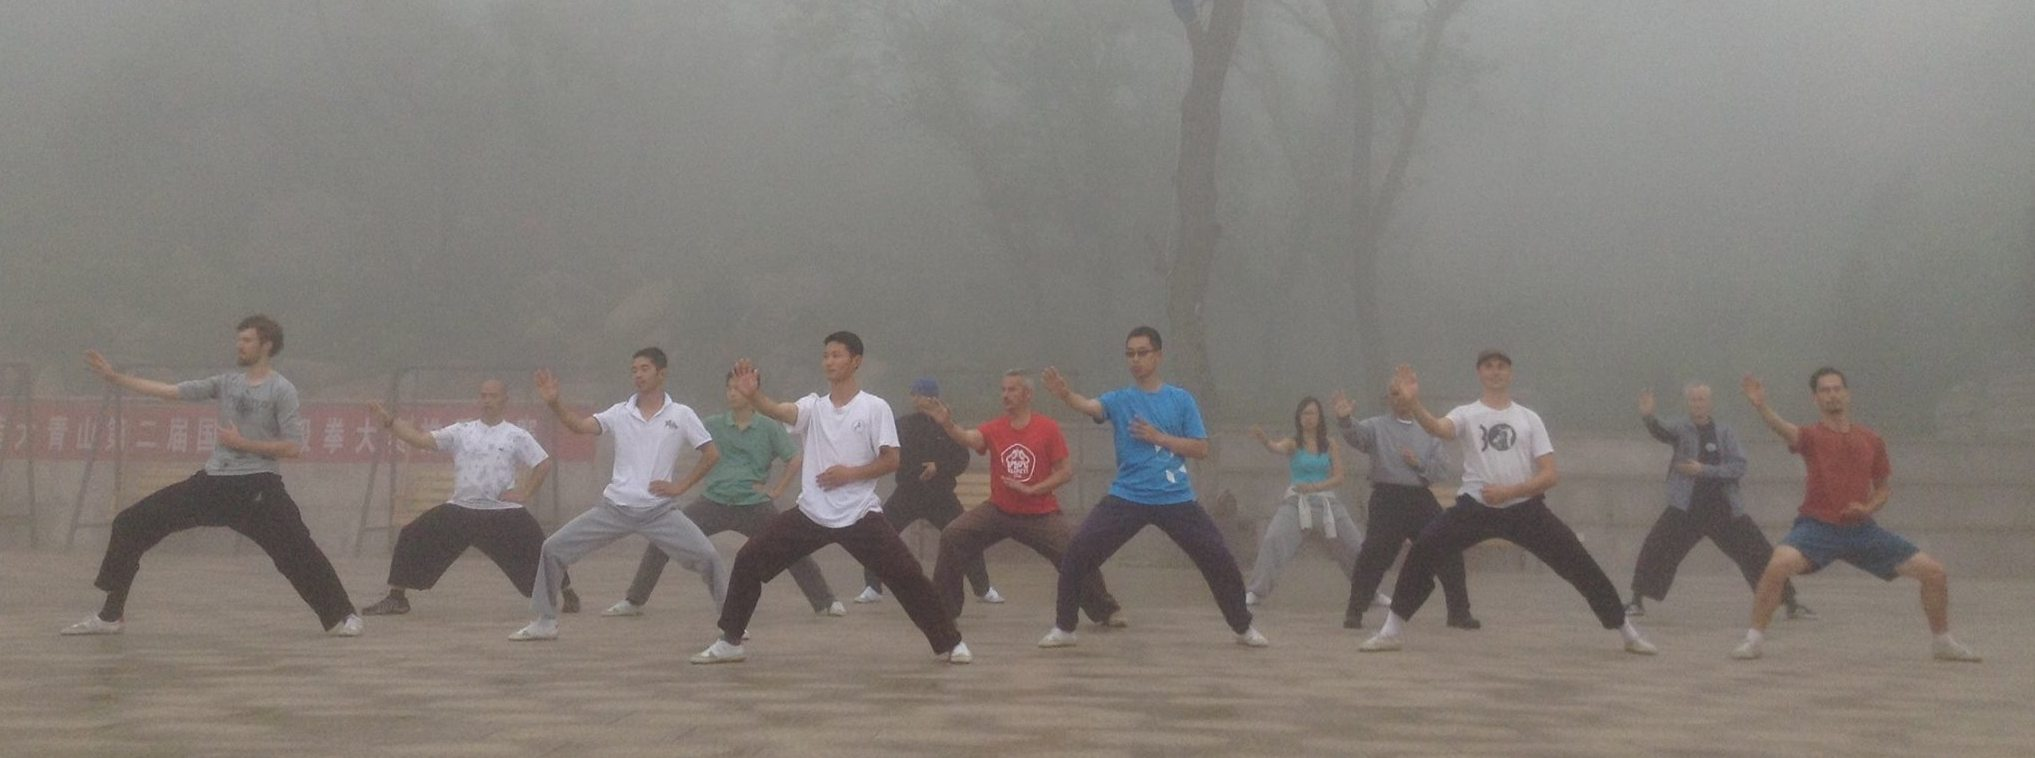 Training im Nebel auf Da Qing Shan, China